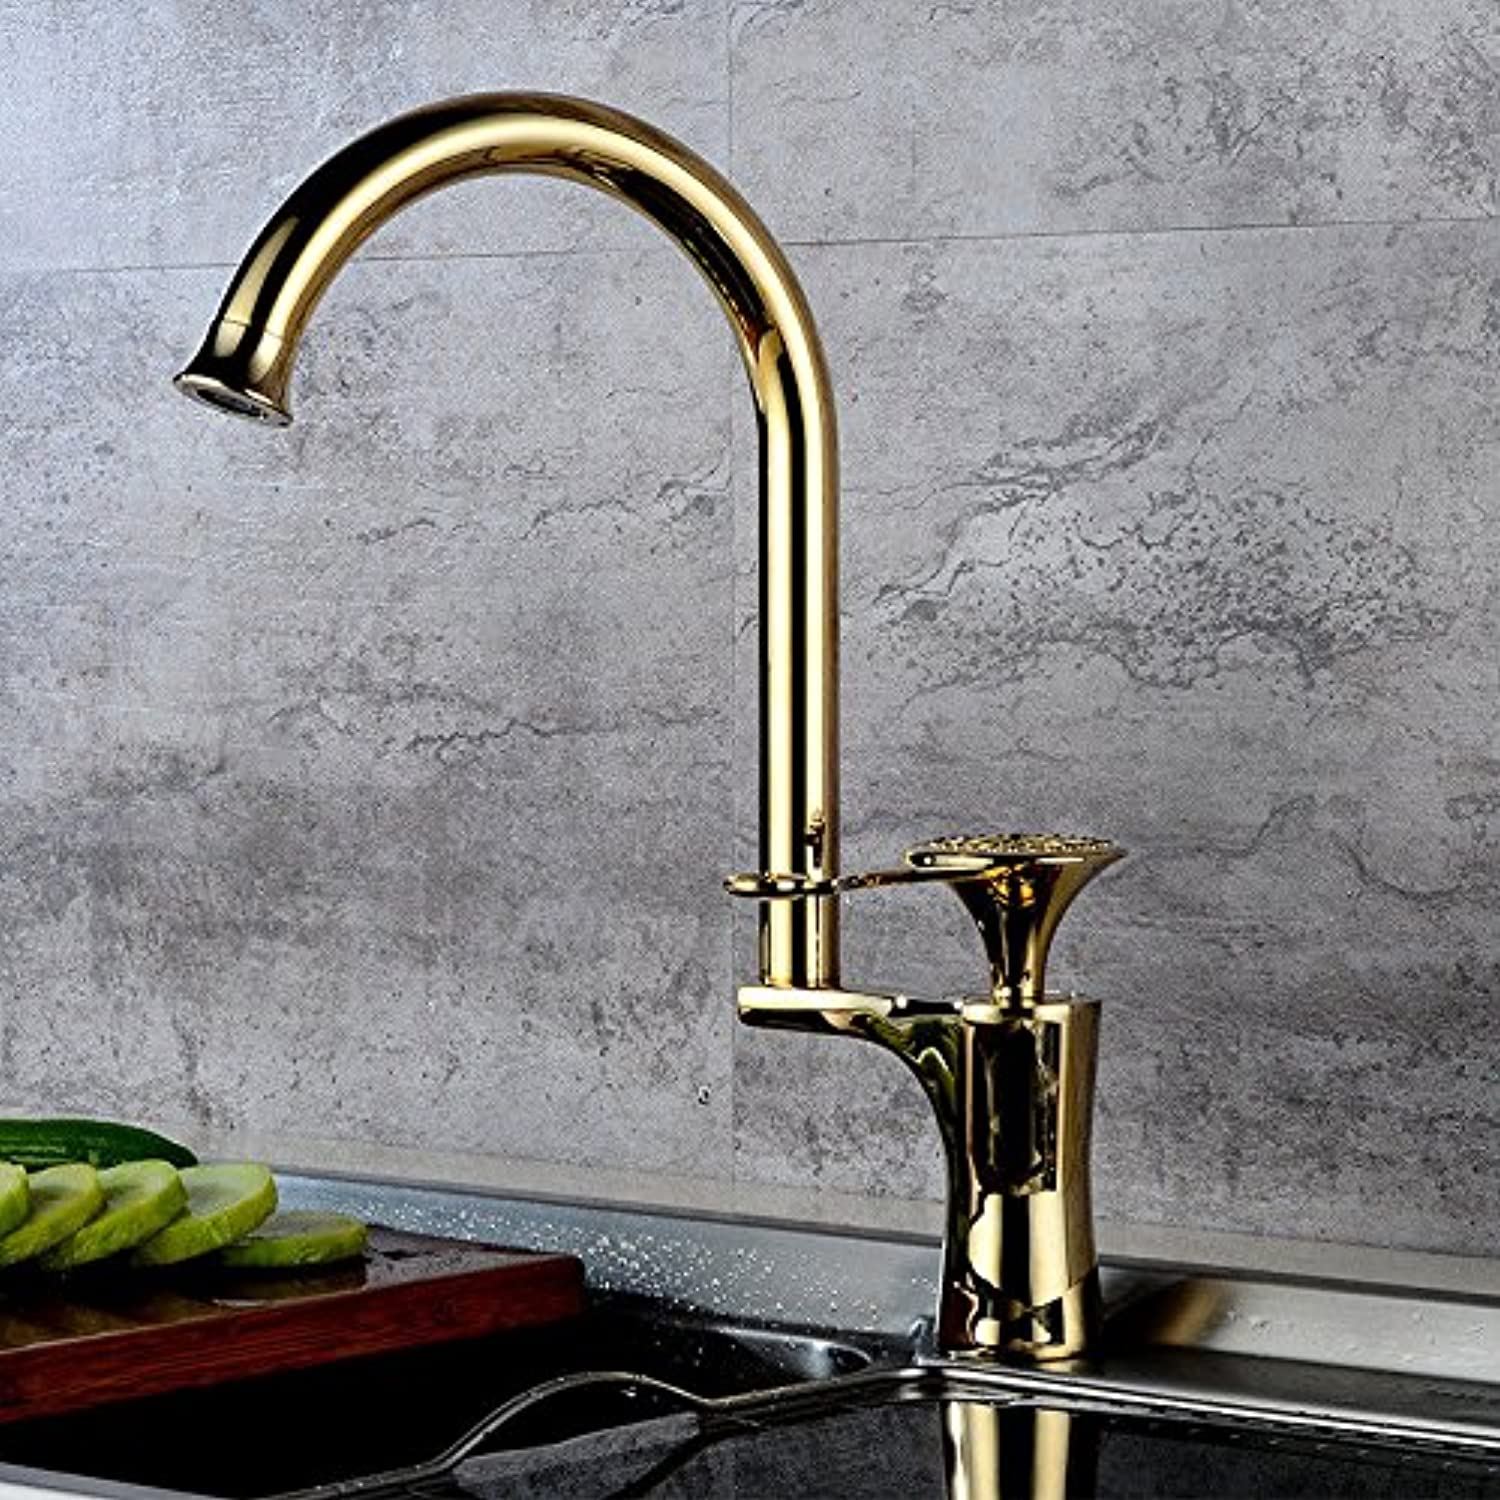 Gyps Faucet Basin Mixer Tap Waterfall Faucet Antique Bathroom Antique simple full copper hot and cold kitchen sink faucet kitchen faucet B as a whole. Bathroom Tub Lever Faucet